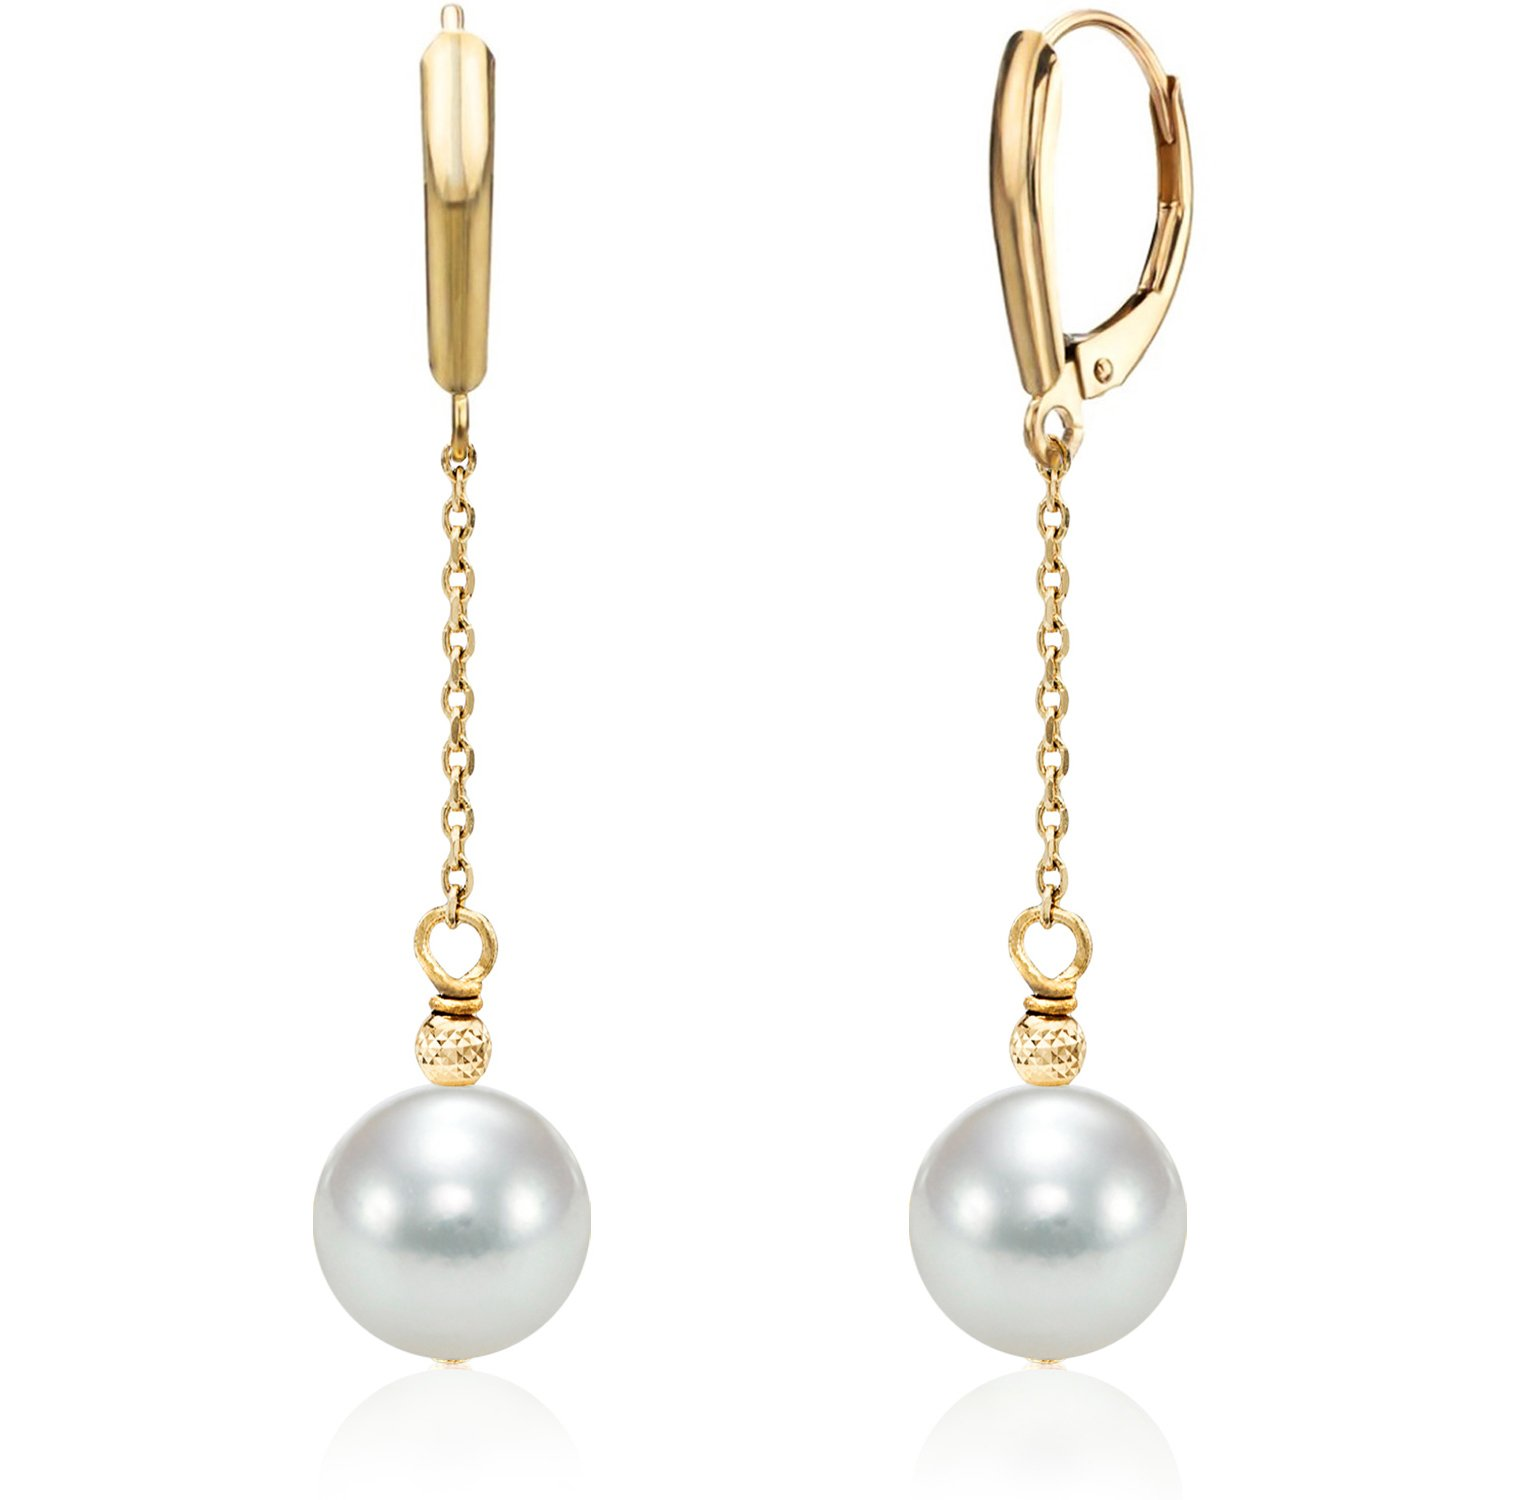 14K Gold Chain White Japanese Akoya Cultured Pearl Leverback Dangle Earrings 8-8.5mm (yellow-gold)